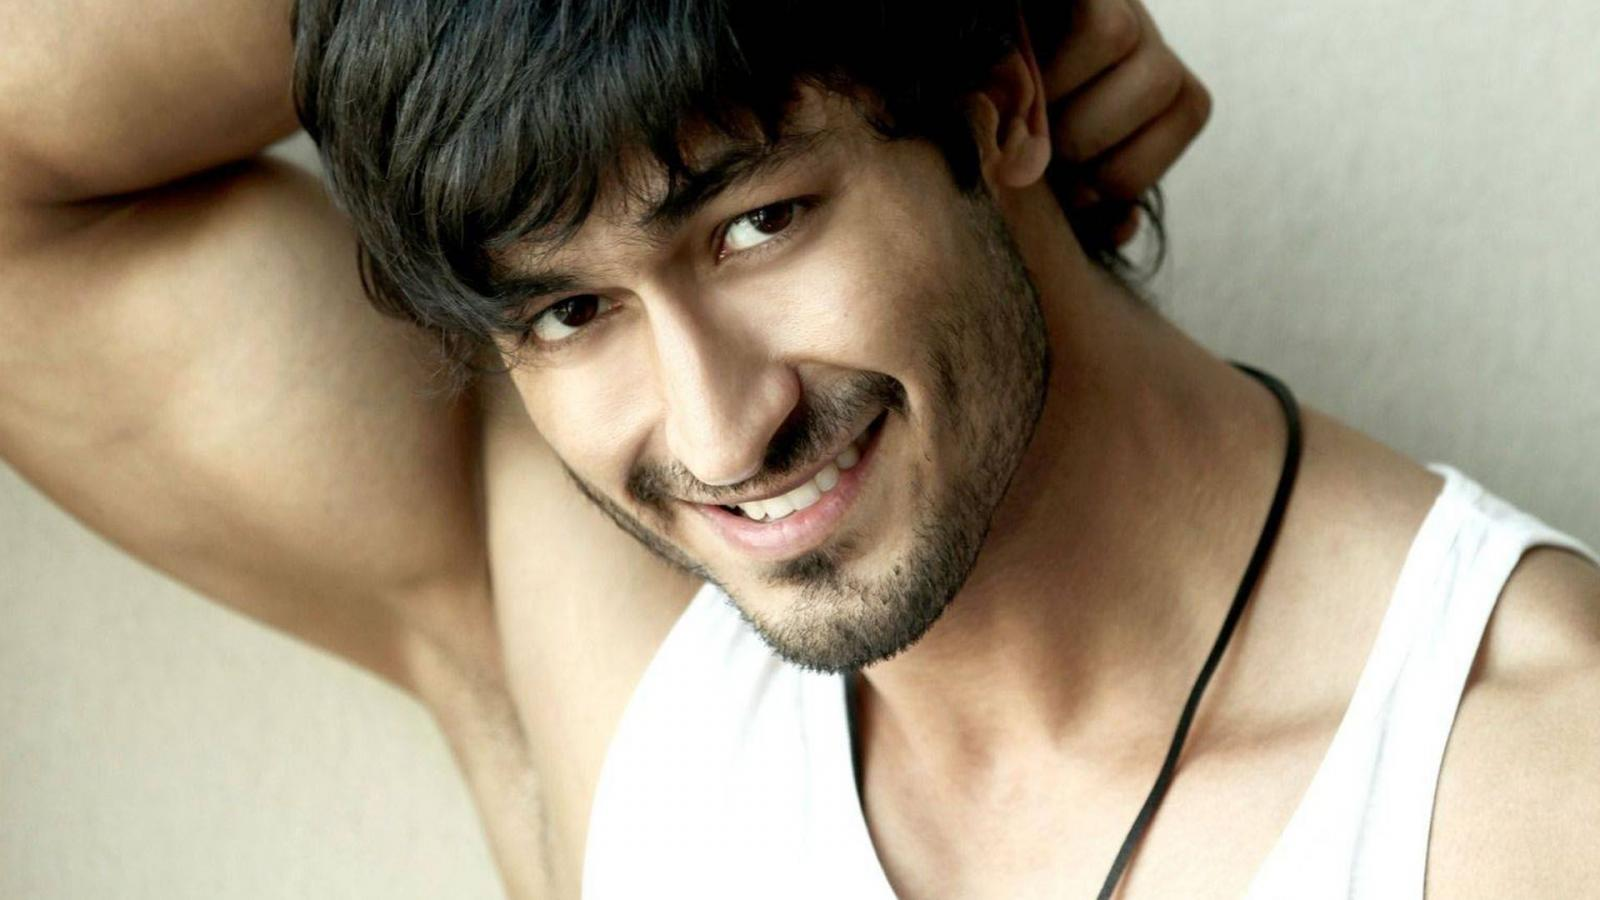 stunning vidyut jamwal smile face free mobile background download hd